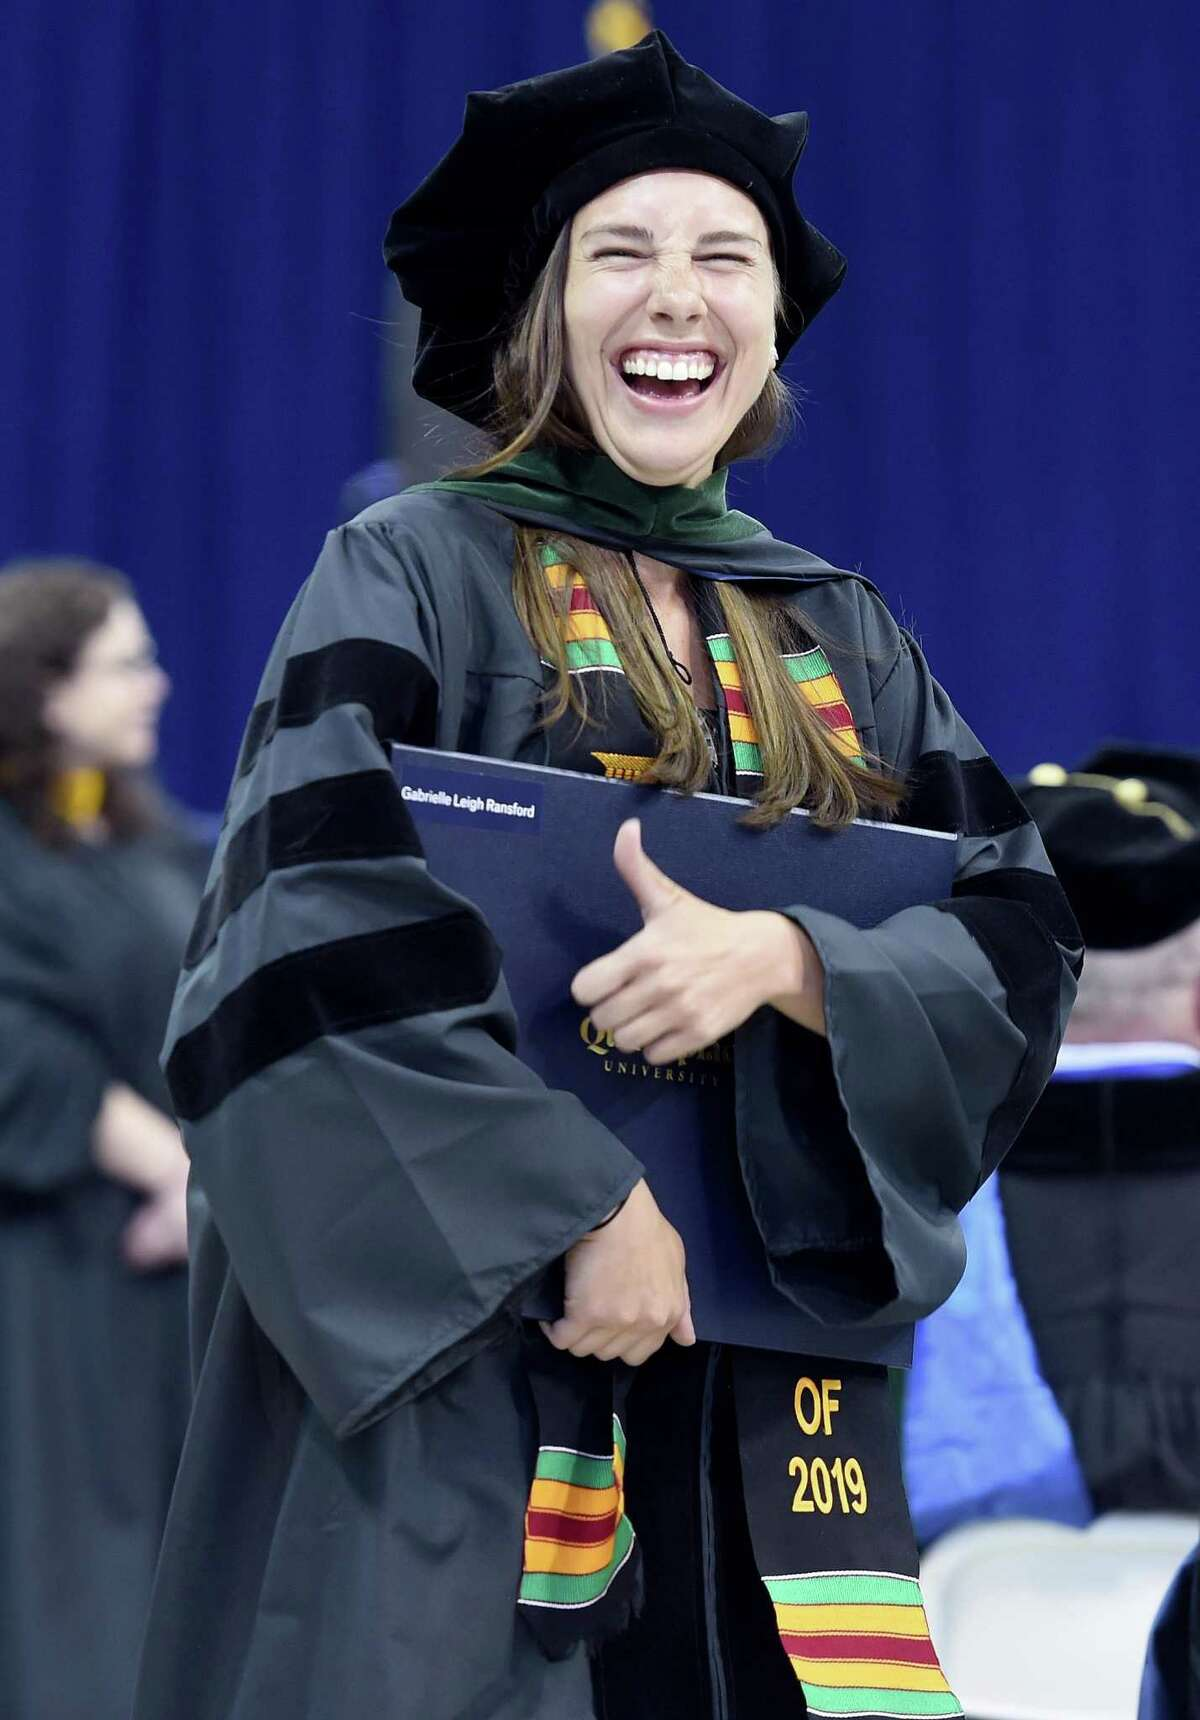 Gabrielle Ransford gives the thumbs up after receiving her Doctor of Medicine degree at the Frank H. Netter MD School of Medicine Commencement Exercises at Quinnipiac University's People's United Center in Hamden on May 10, 2019.